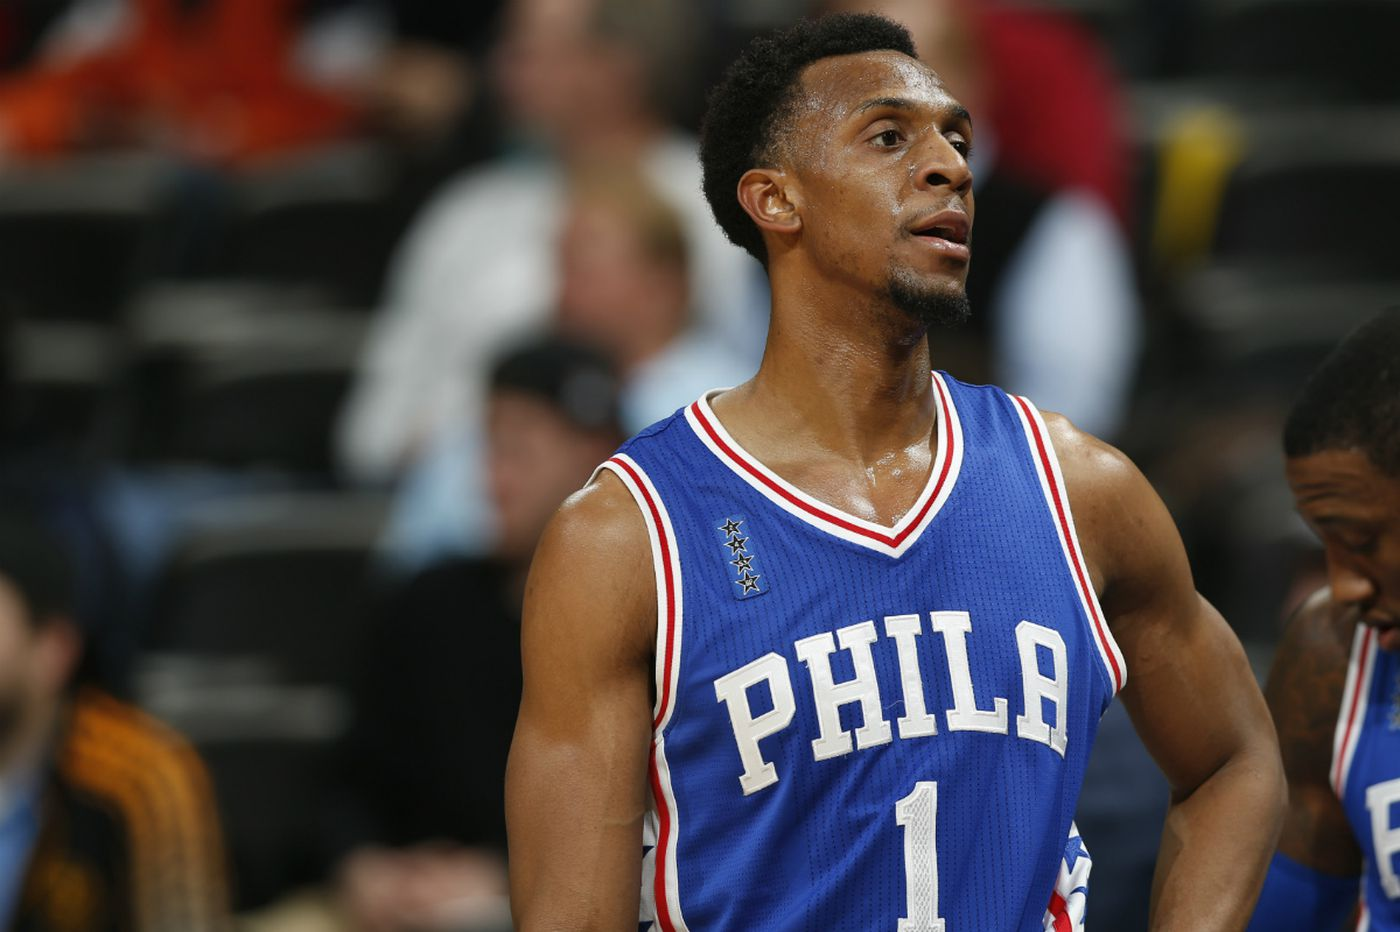 Ish Smith hoping to stay with Sixers, but he'll have options